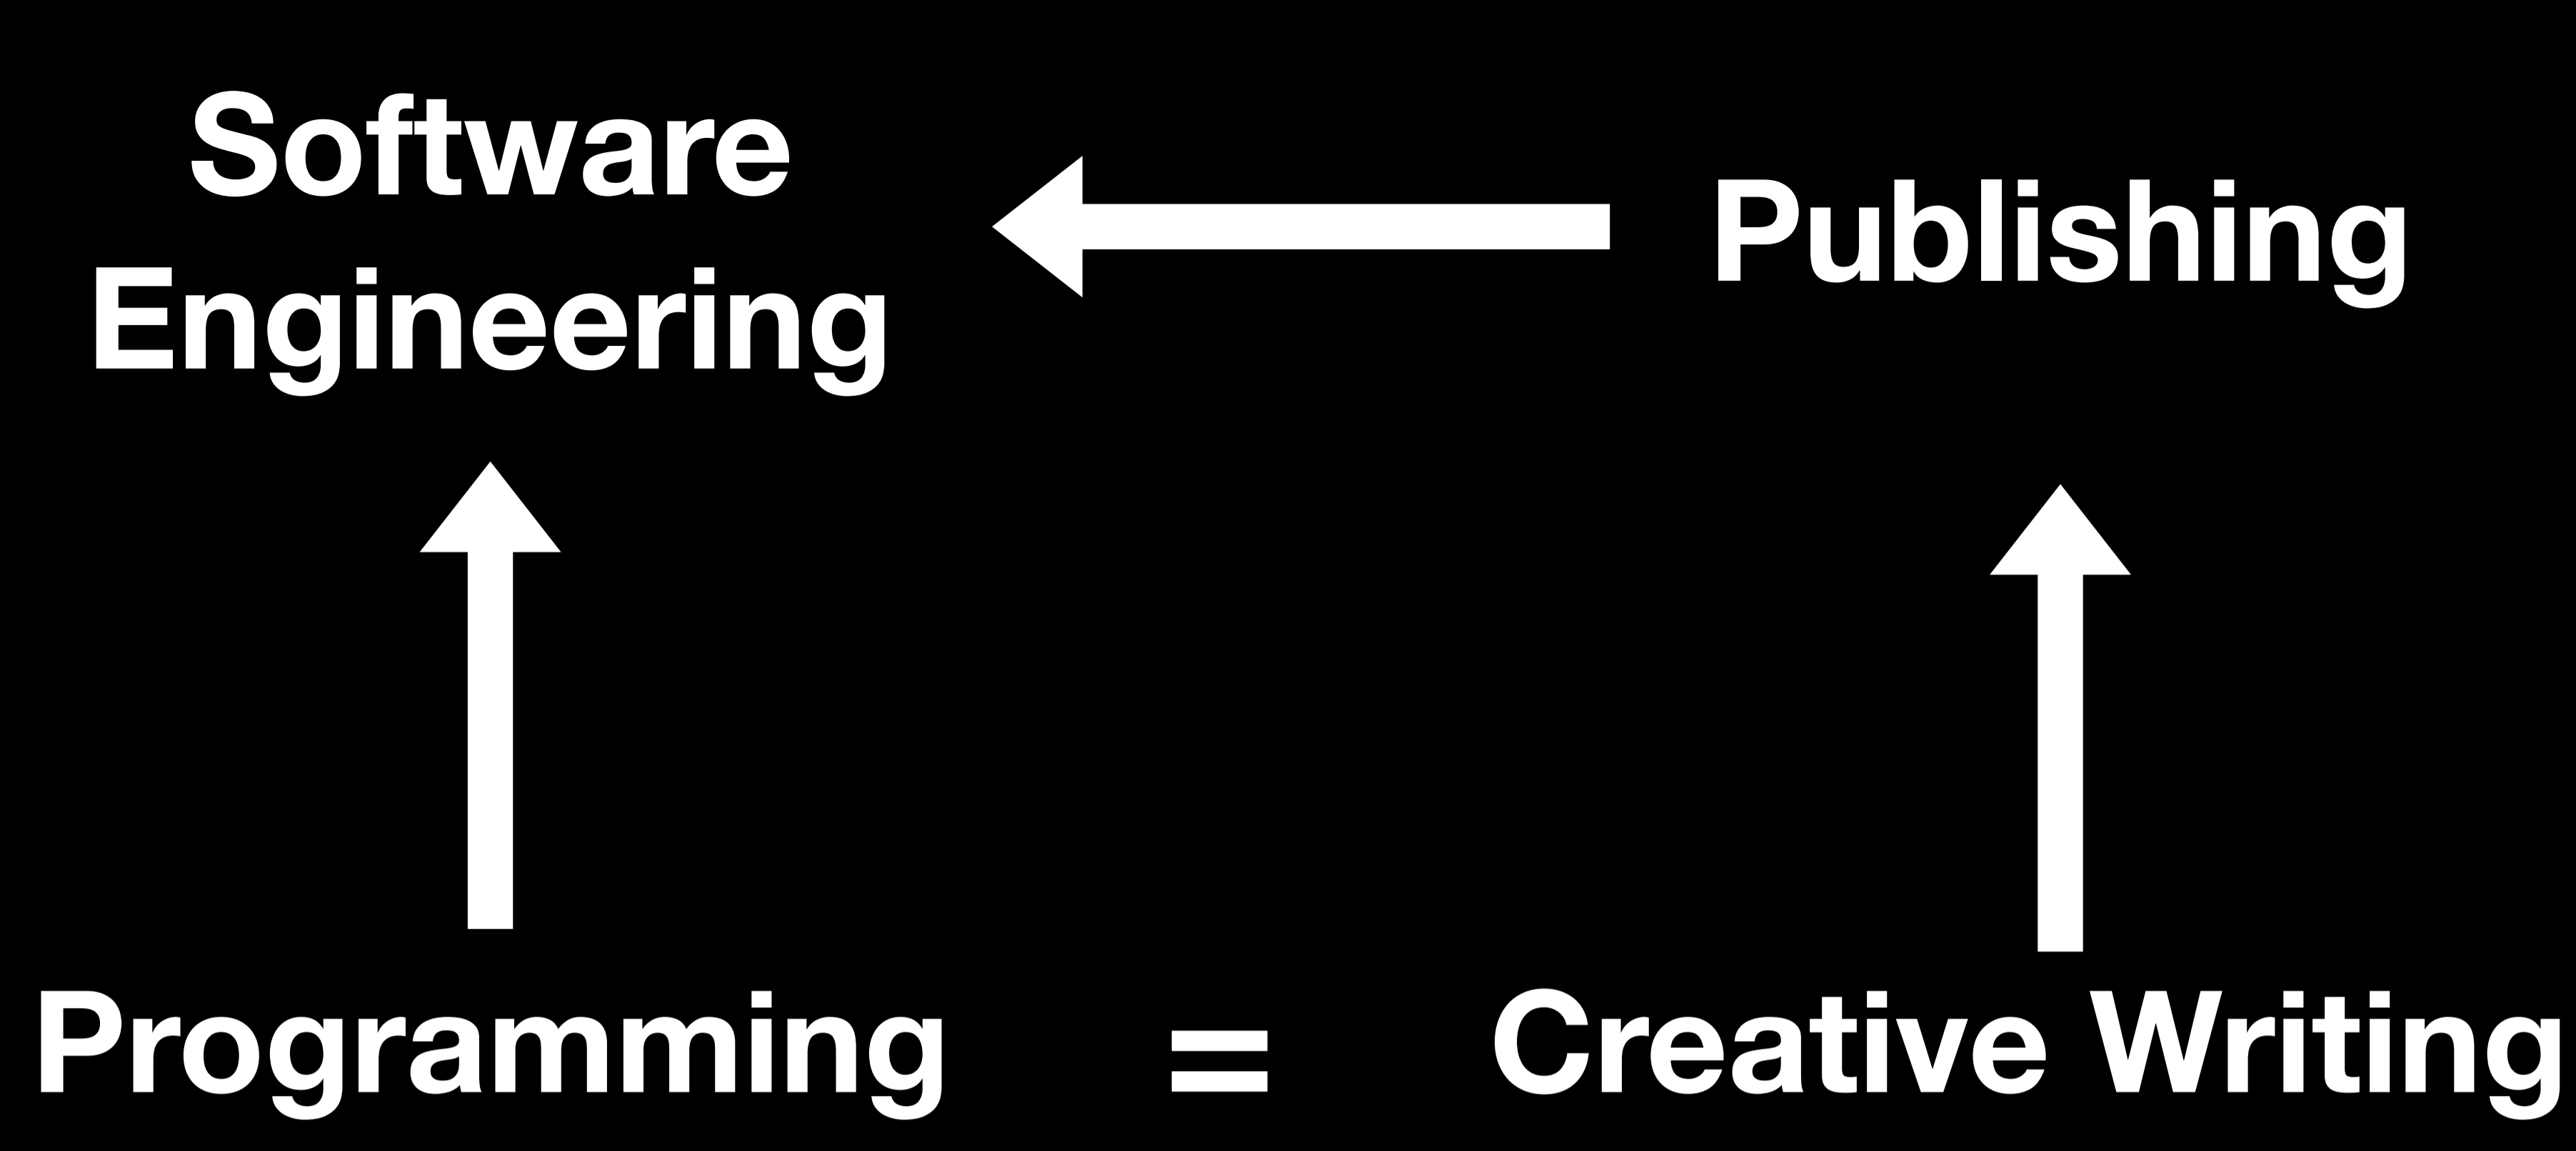 Software engineering analogy to creative writing